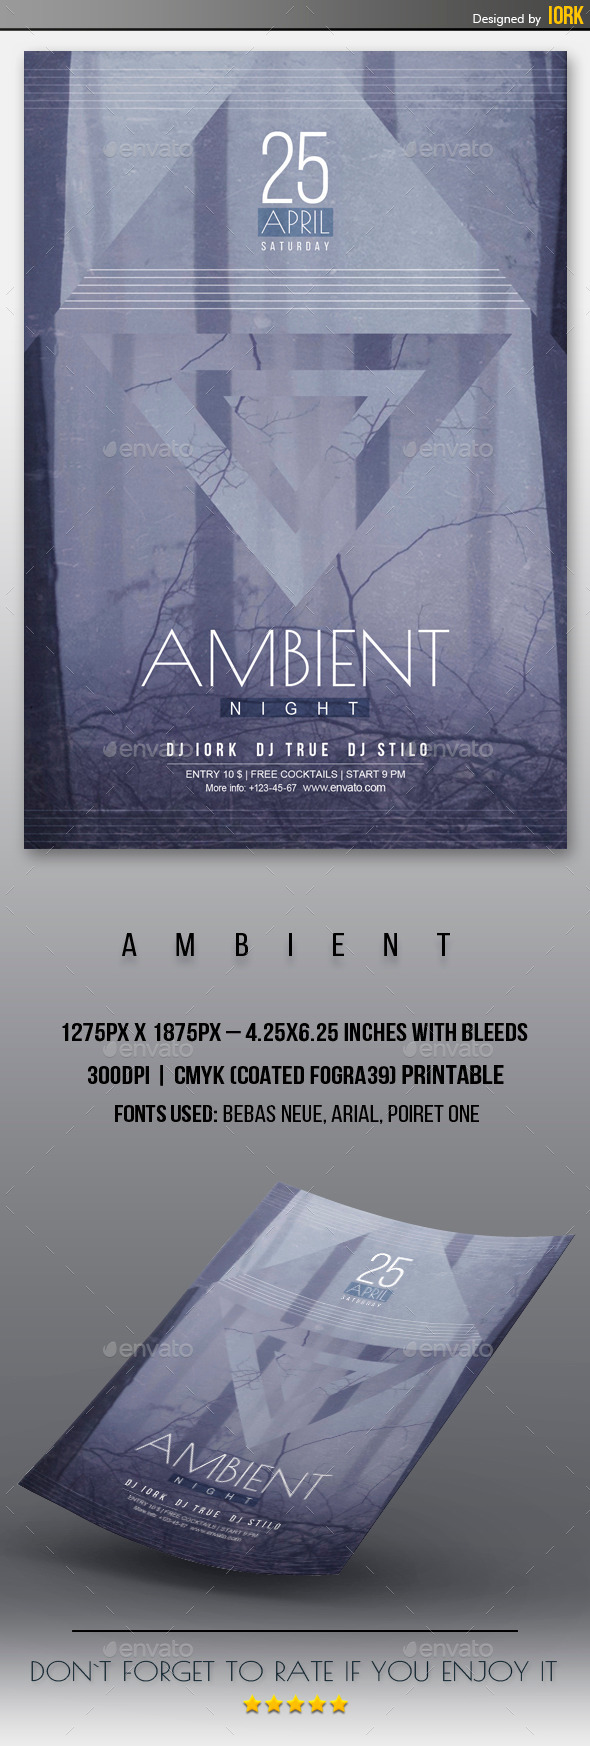 GraphicRiver Ambient Night Flyer 11271900